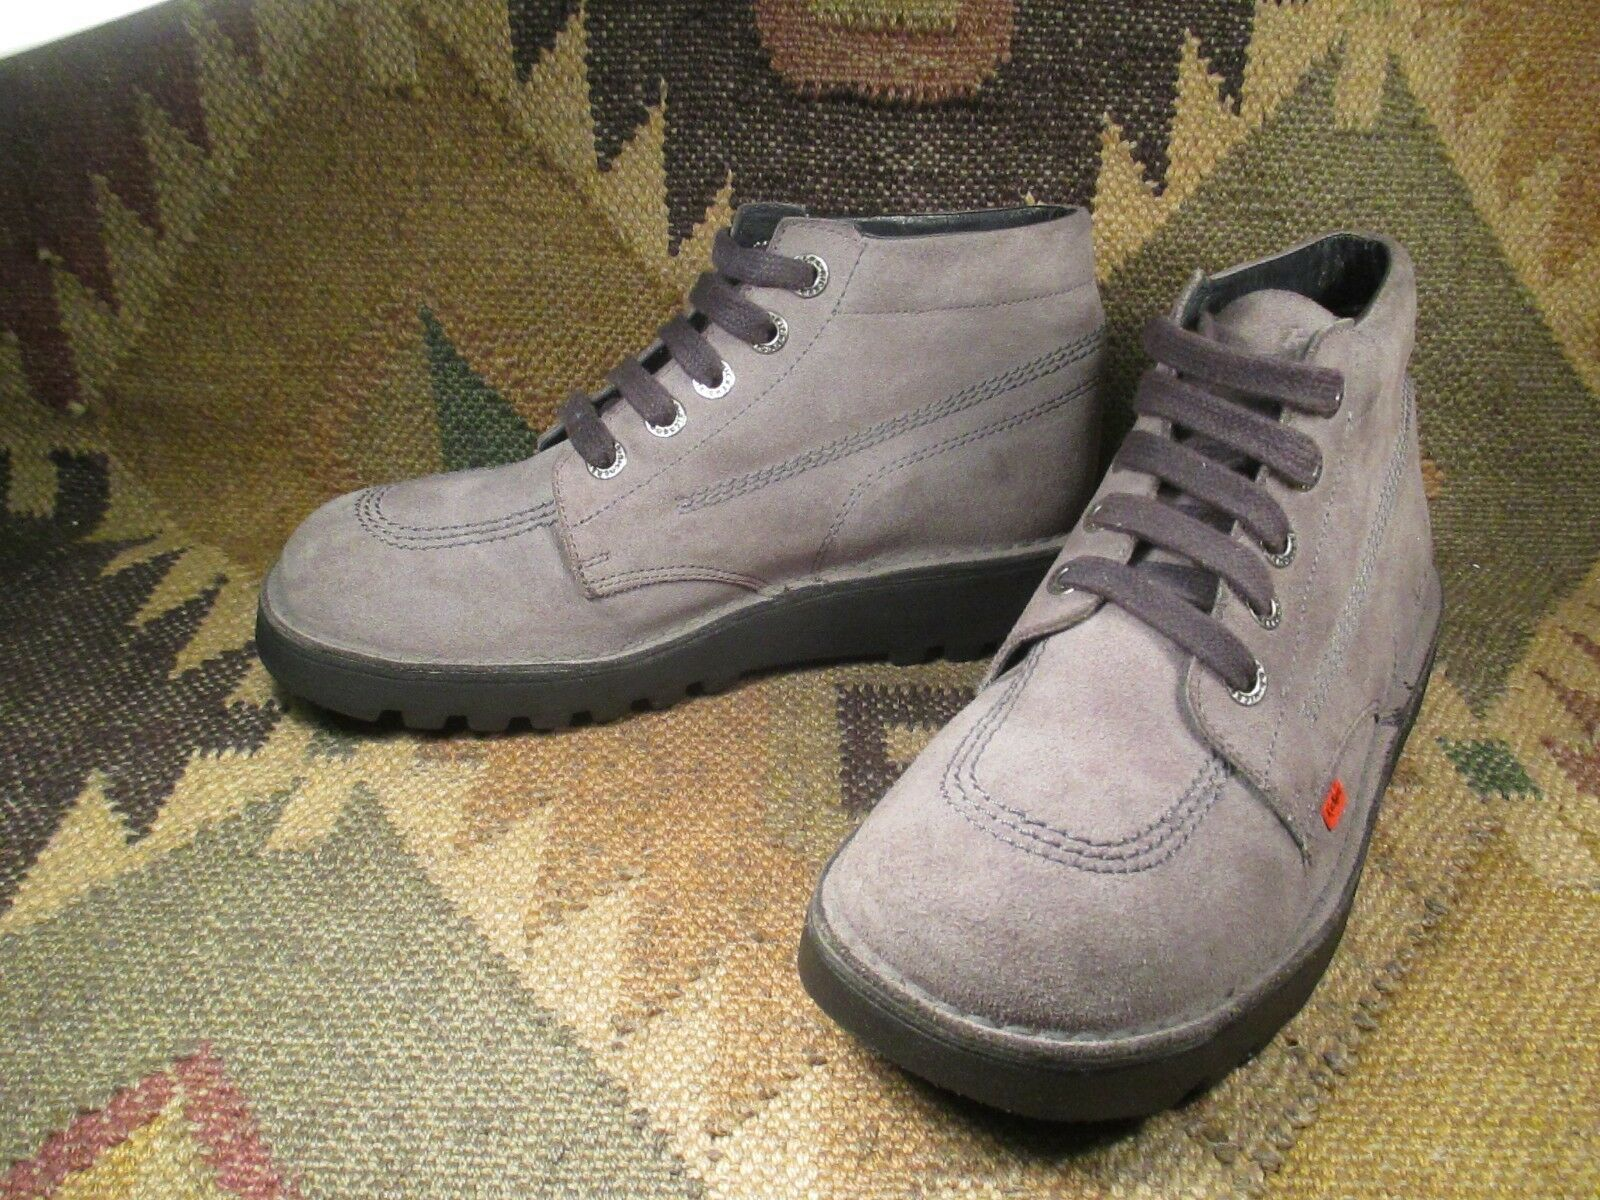 KicKers Grau Suede CHUKKA in ANKLE BOOT Größe 40 made in CHUKKA France e7fdf0